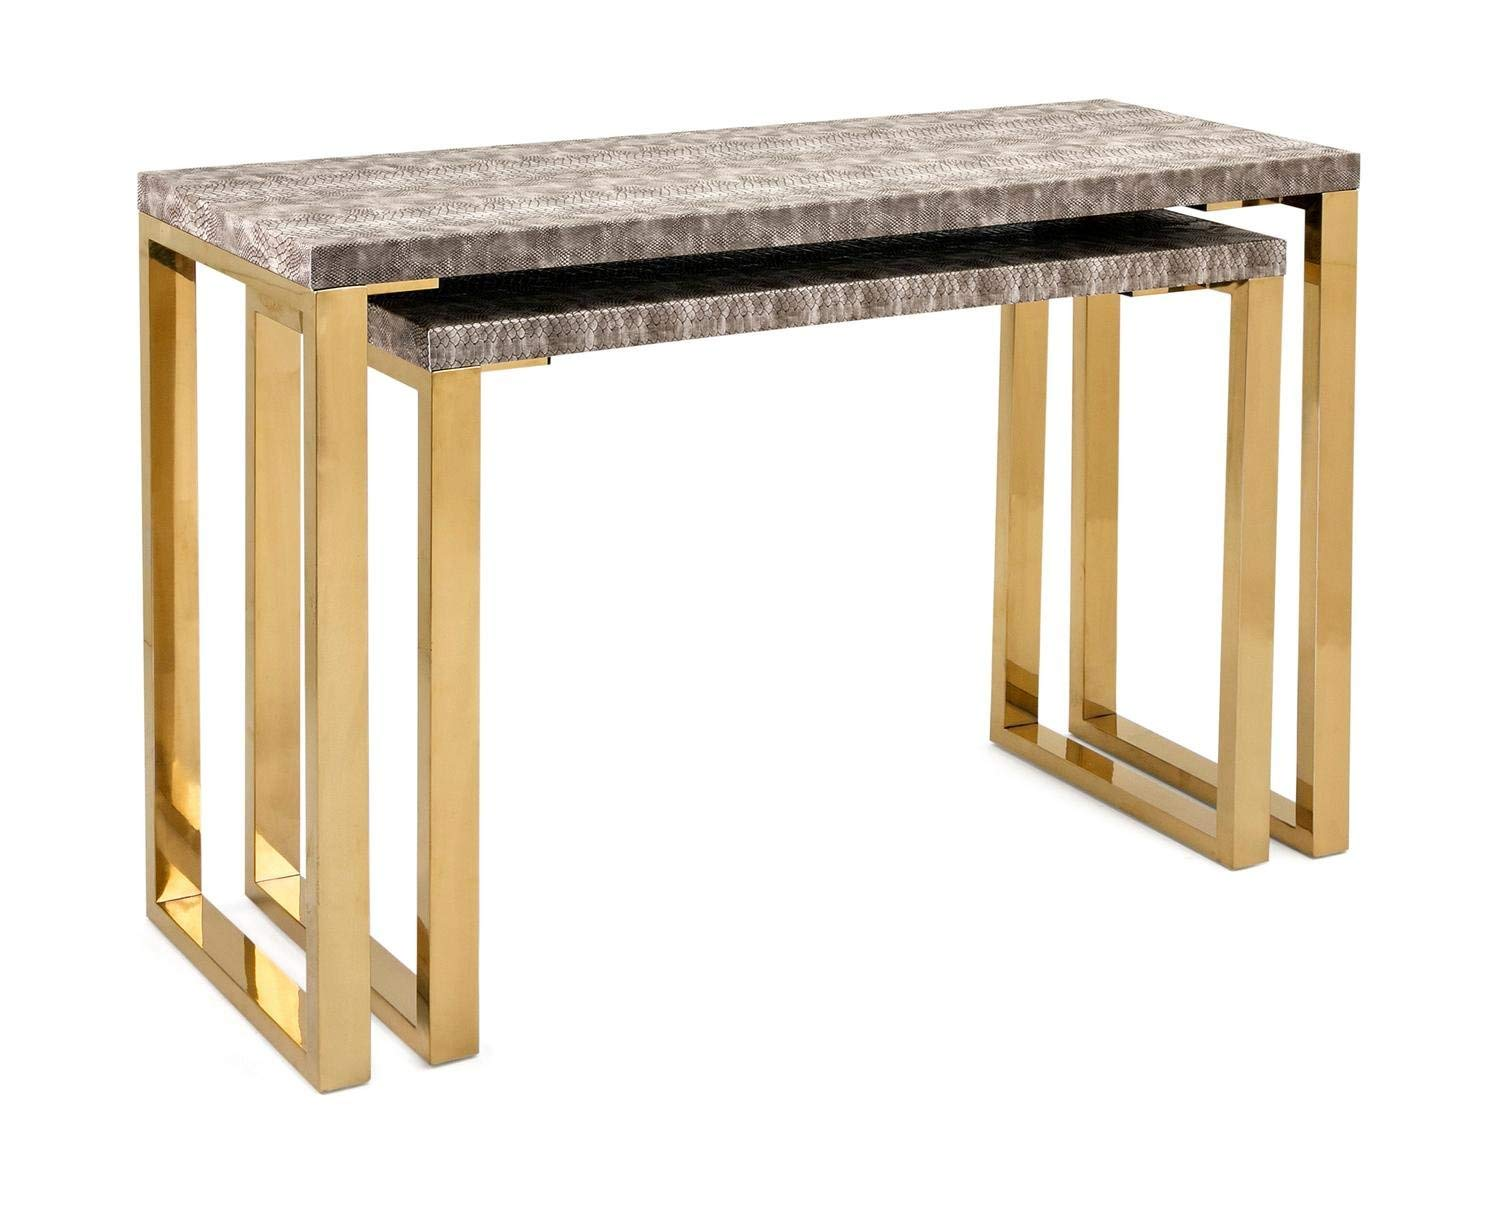 Cheap 2 leg console tables find 2 leg console tables deals on line get quotations cc home furnishings set of 2 brown and golden colored rectangular console tables 39 watchthetrailerfo